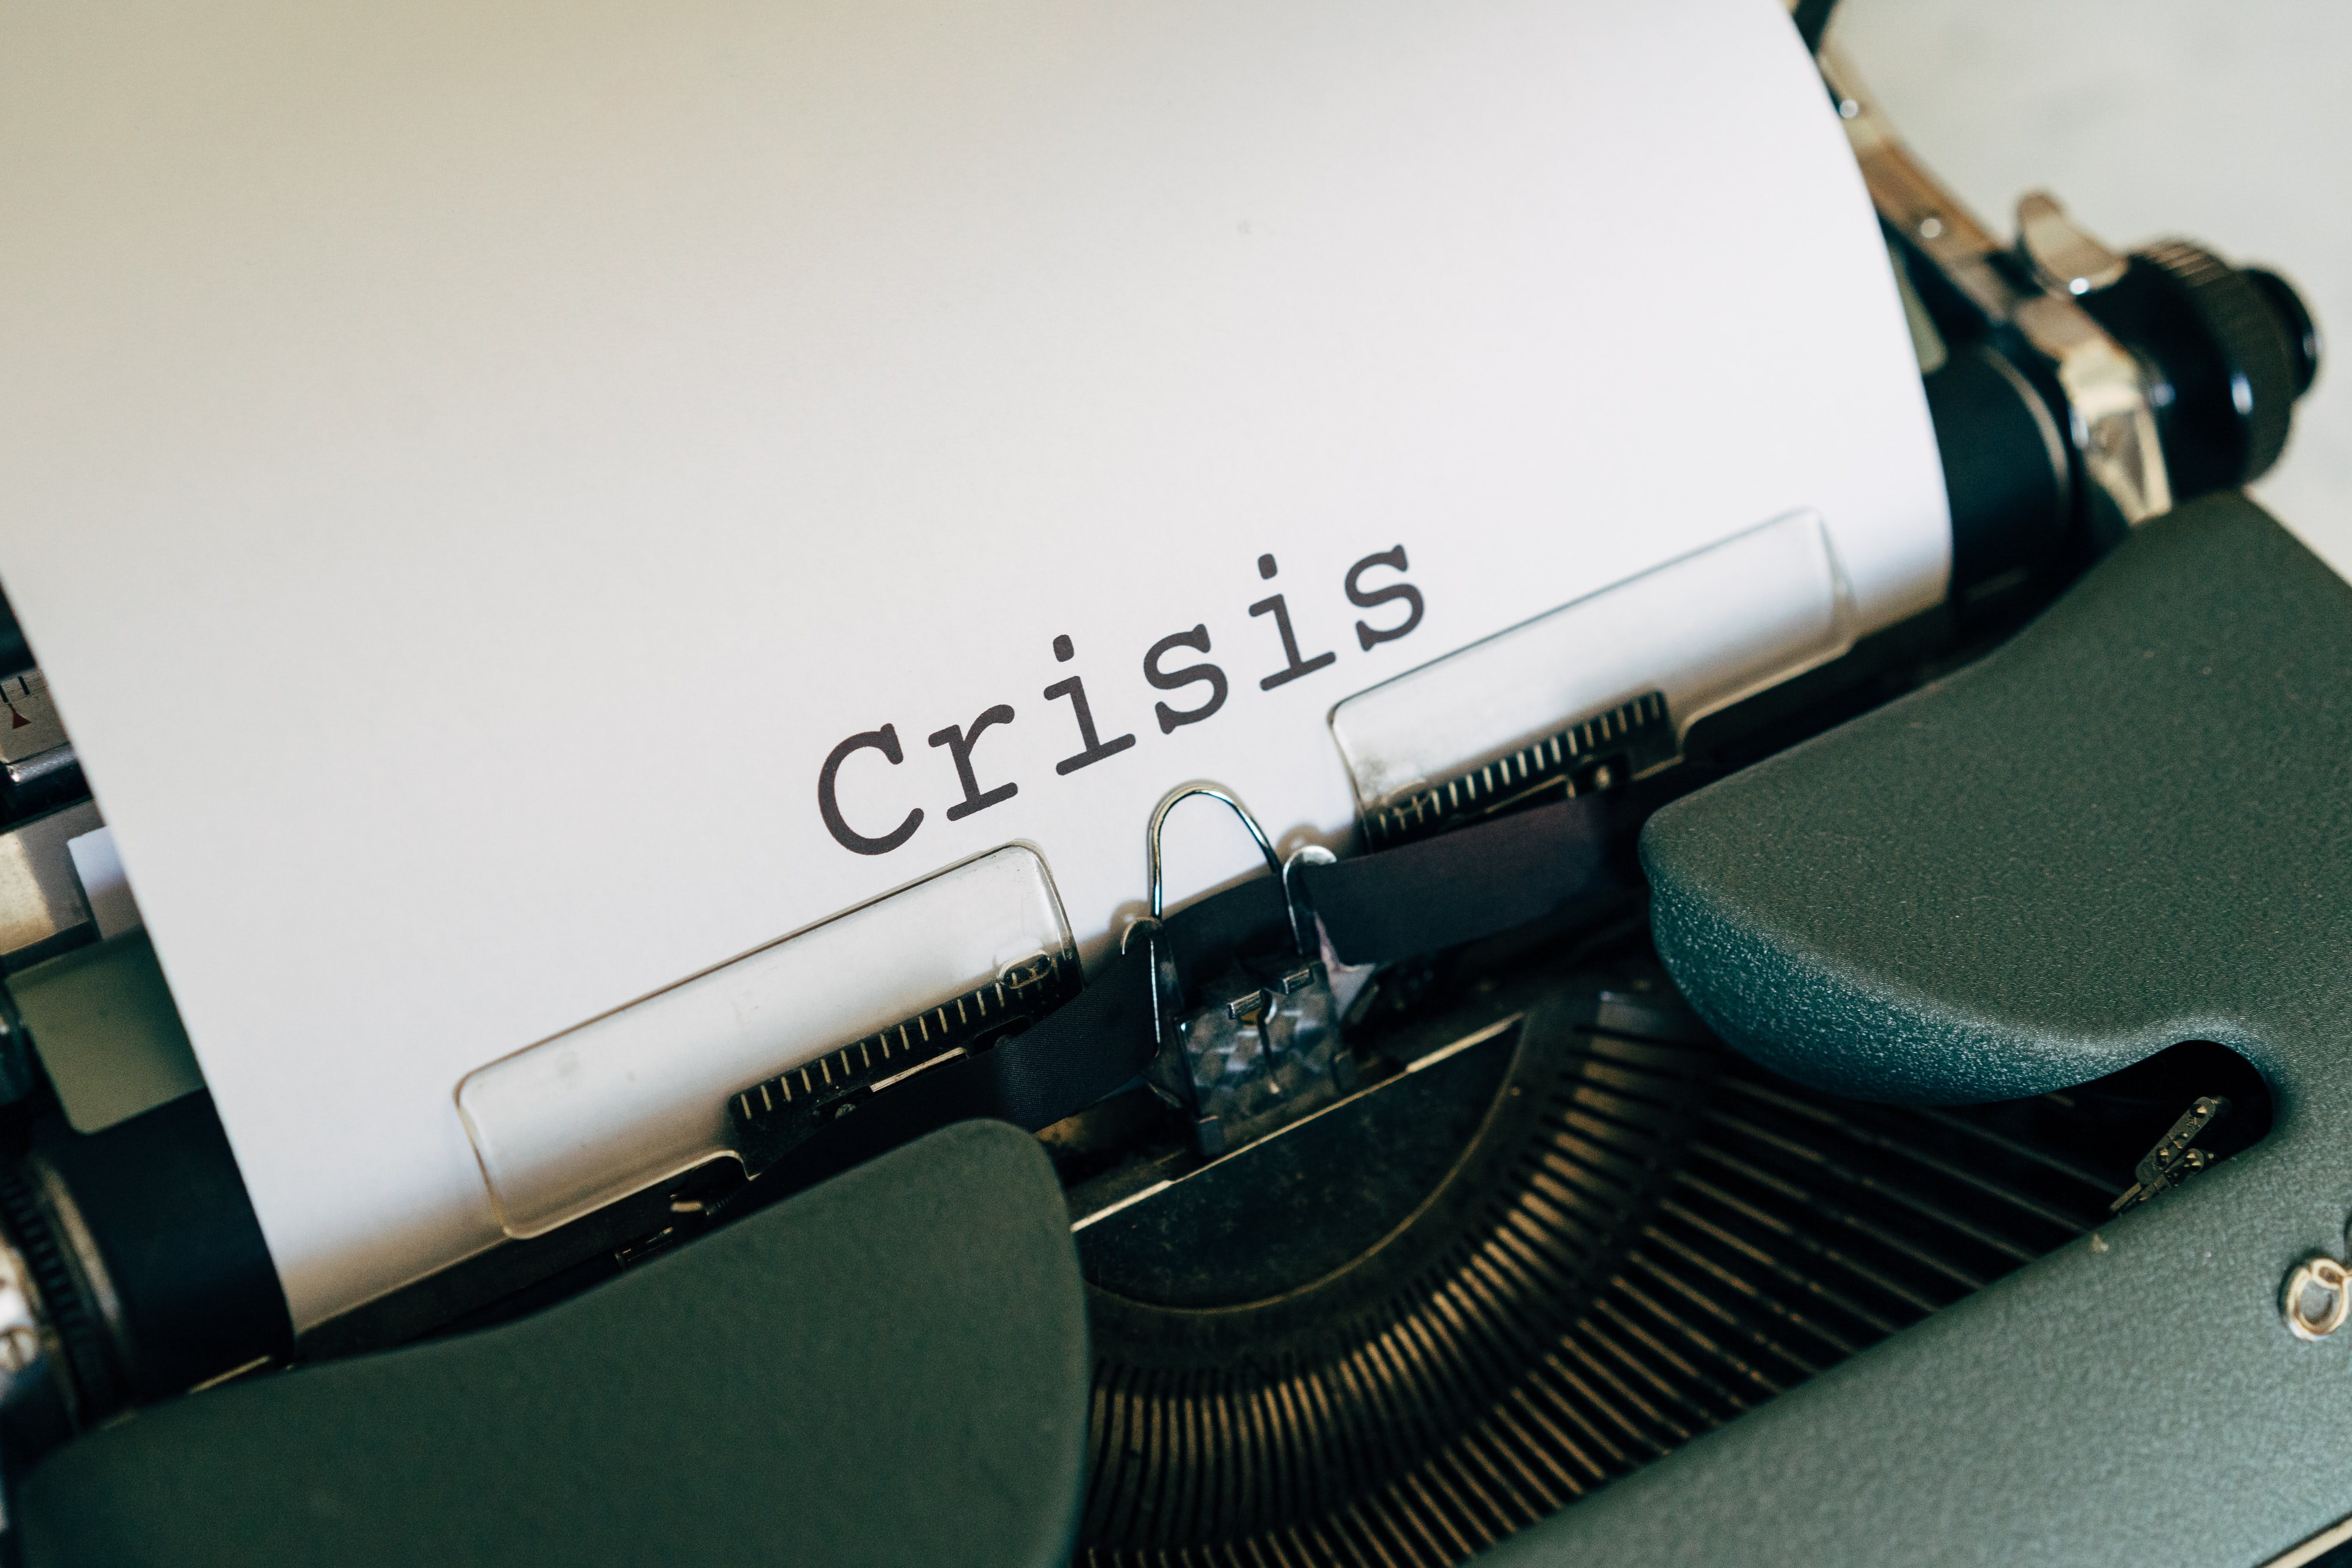 WEBINAR ON DEMAND | Taking Stock - Where are we with this crisis? - 7th May